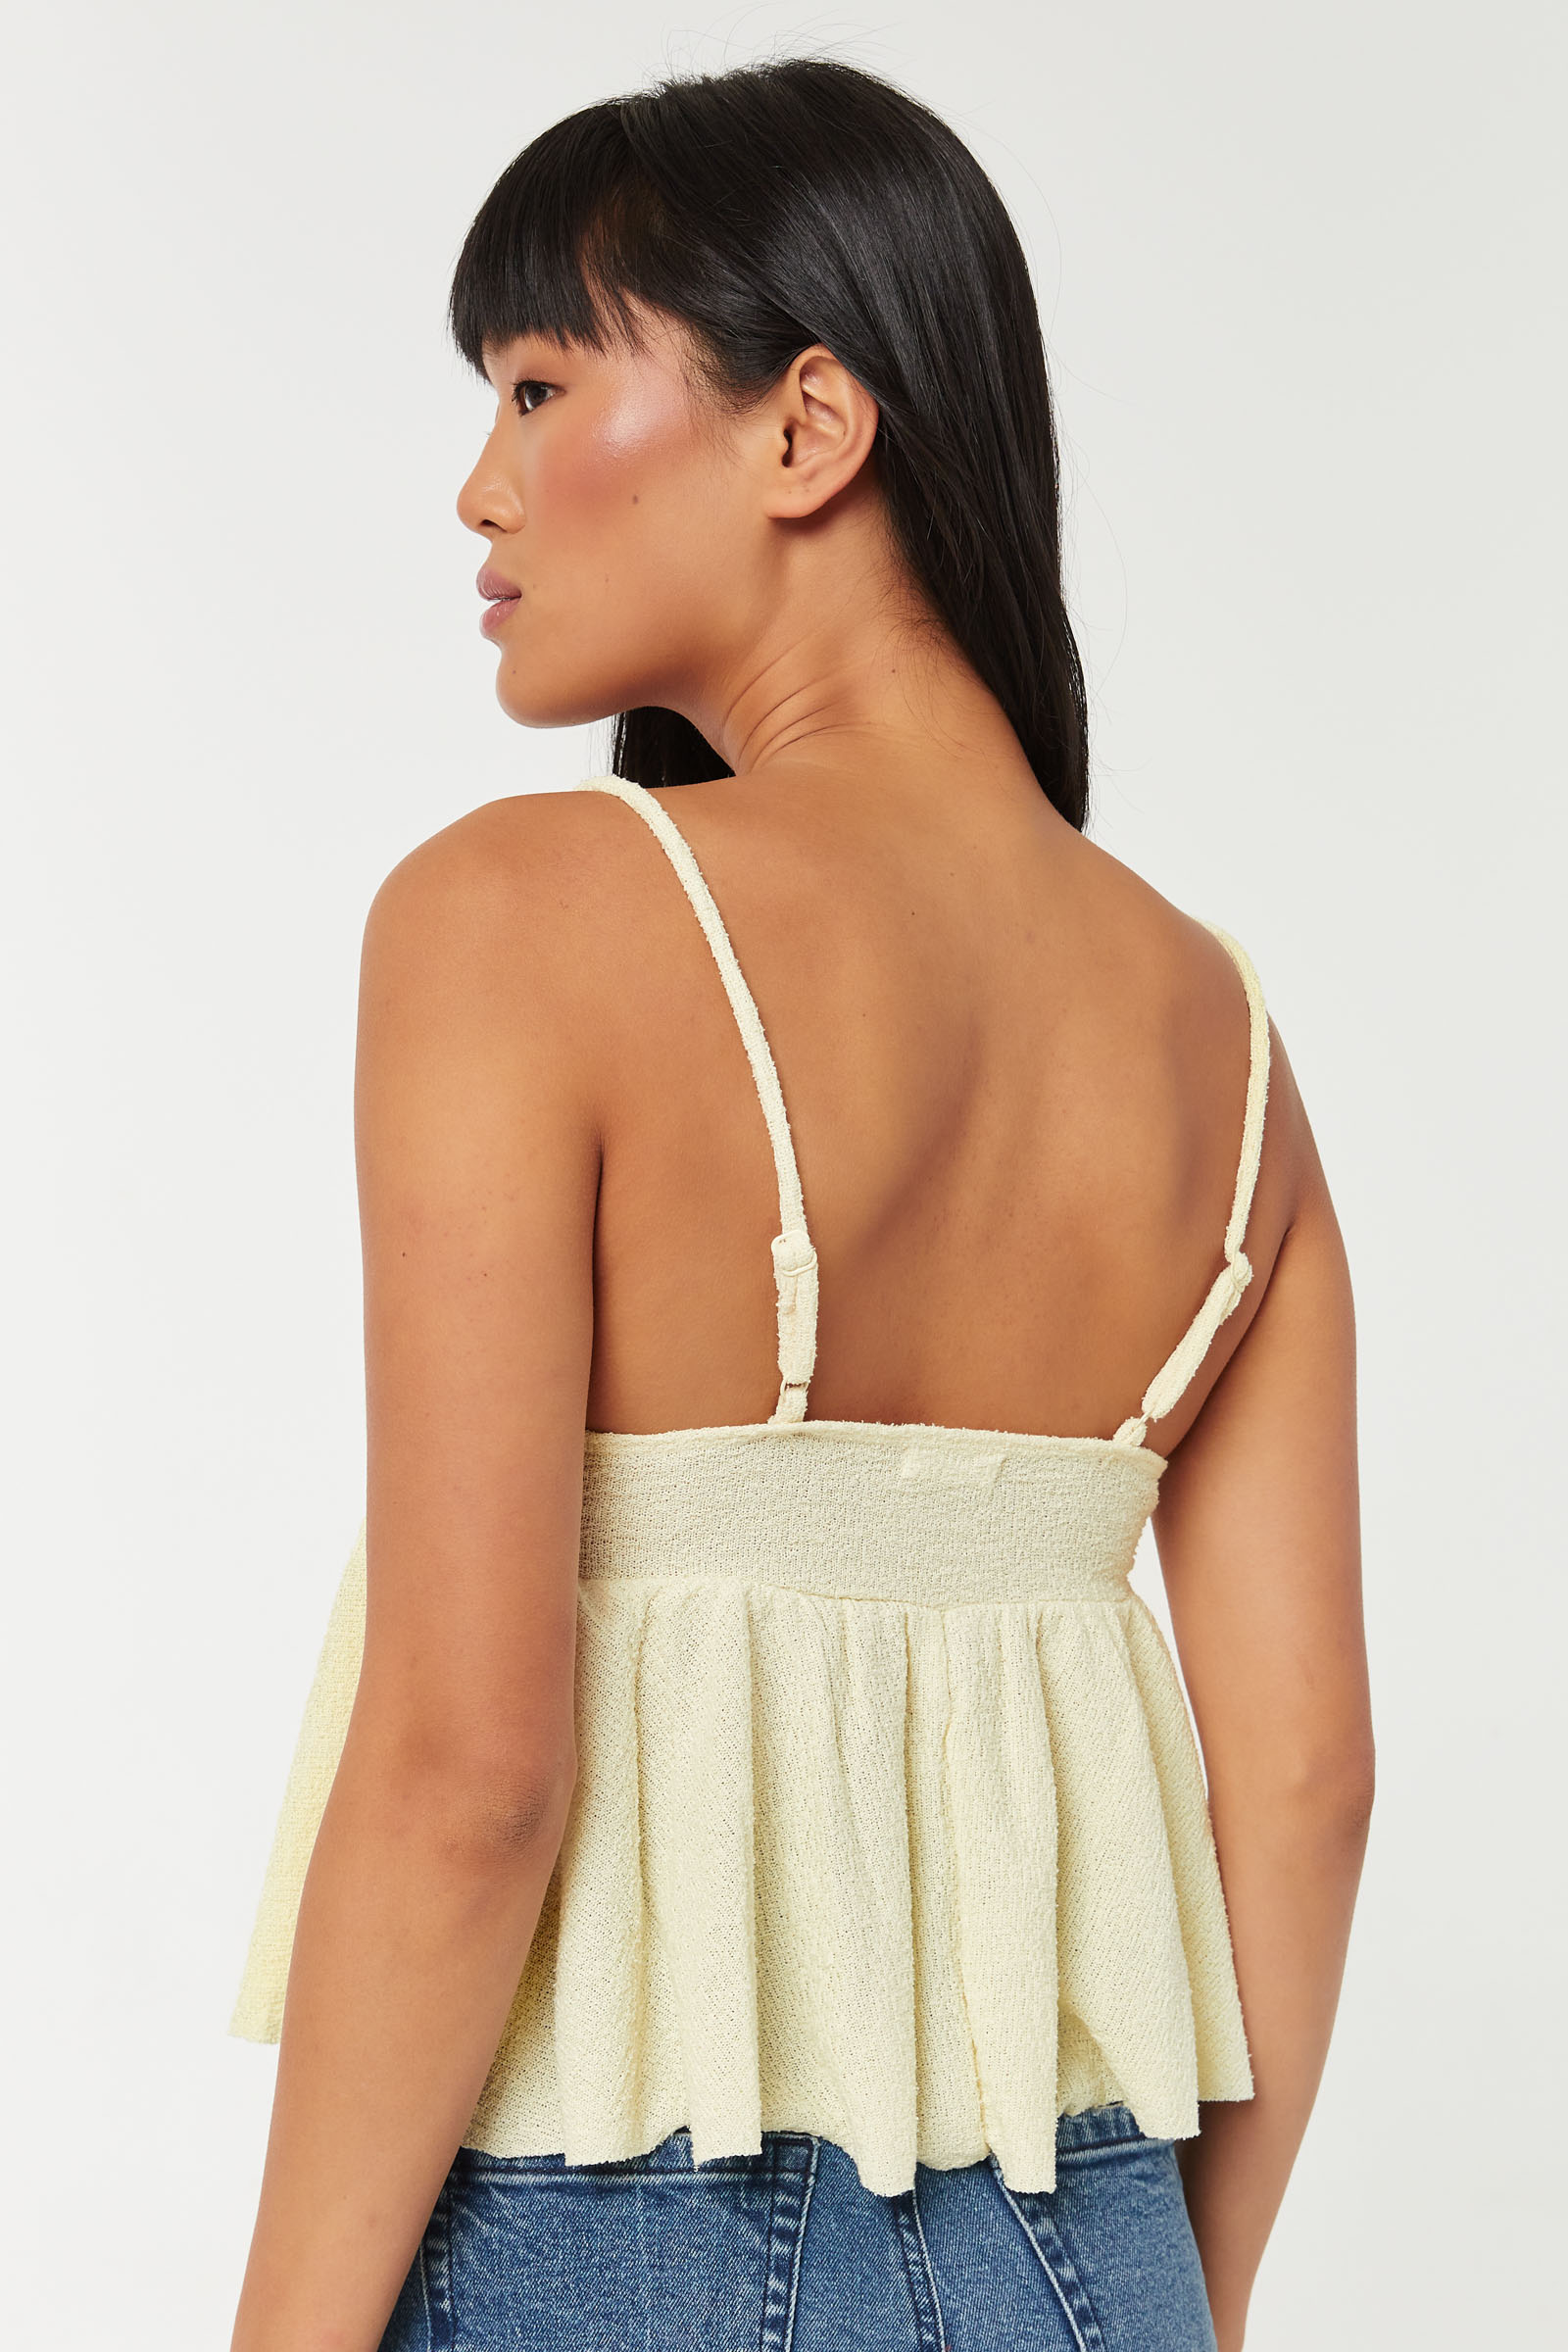 Peplum Crop Tank Top with knotted Bust